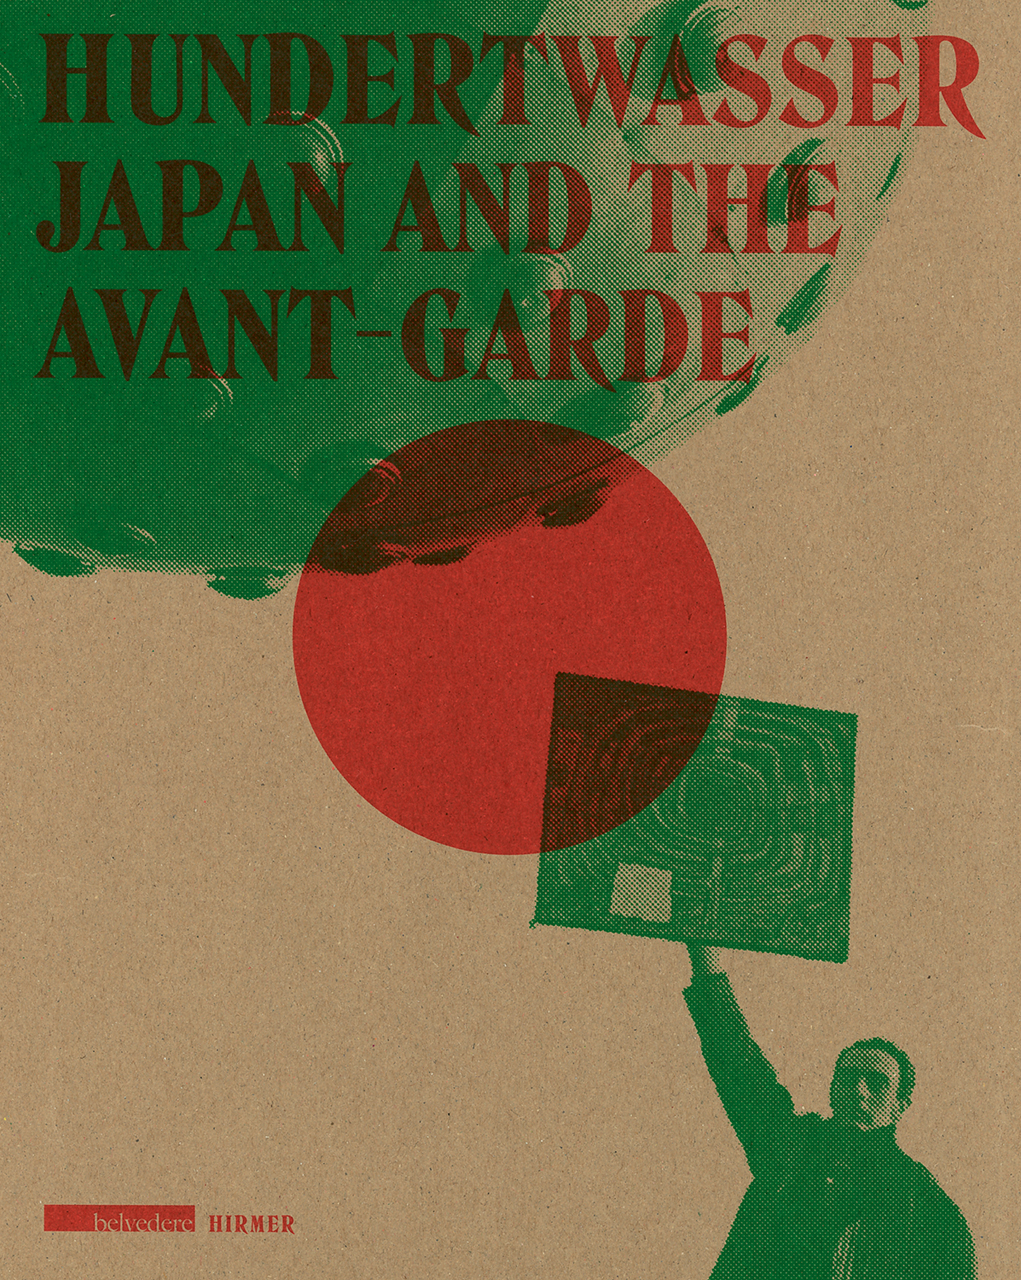 Hundertwasser: Japan and the Avant-garde